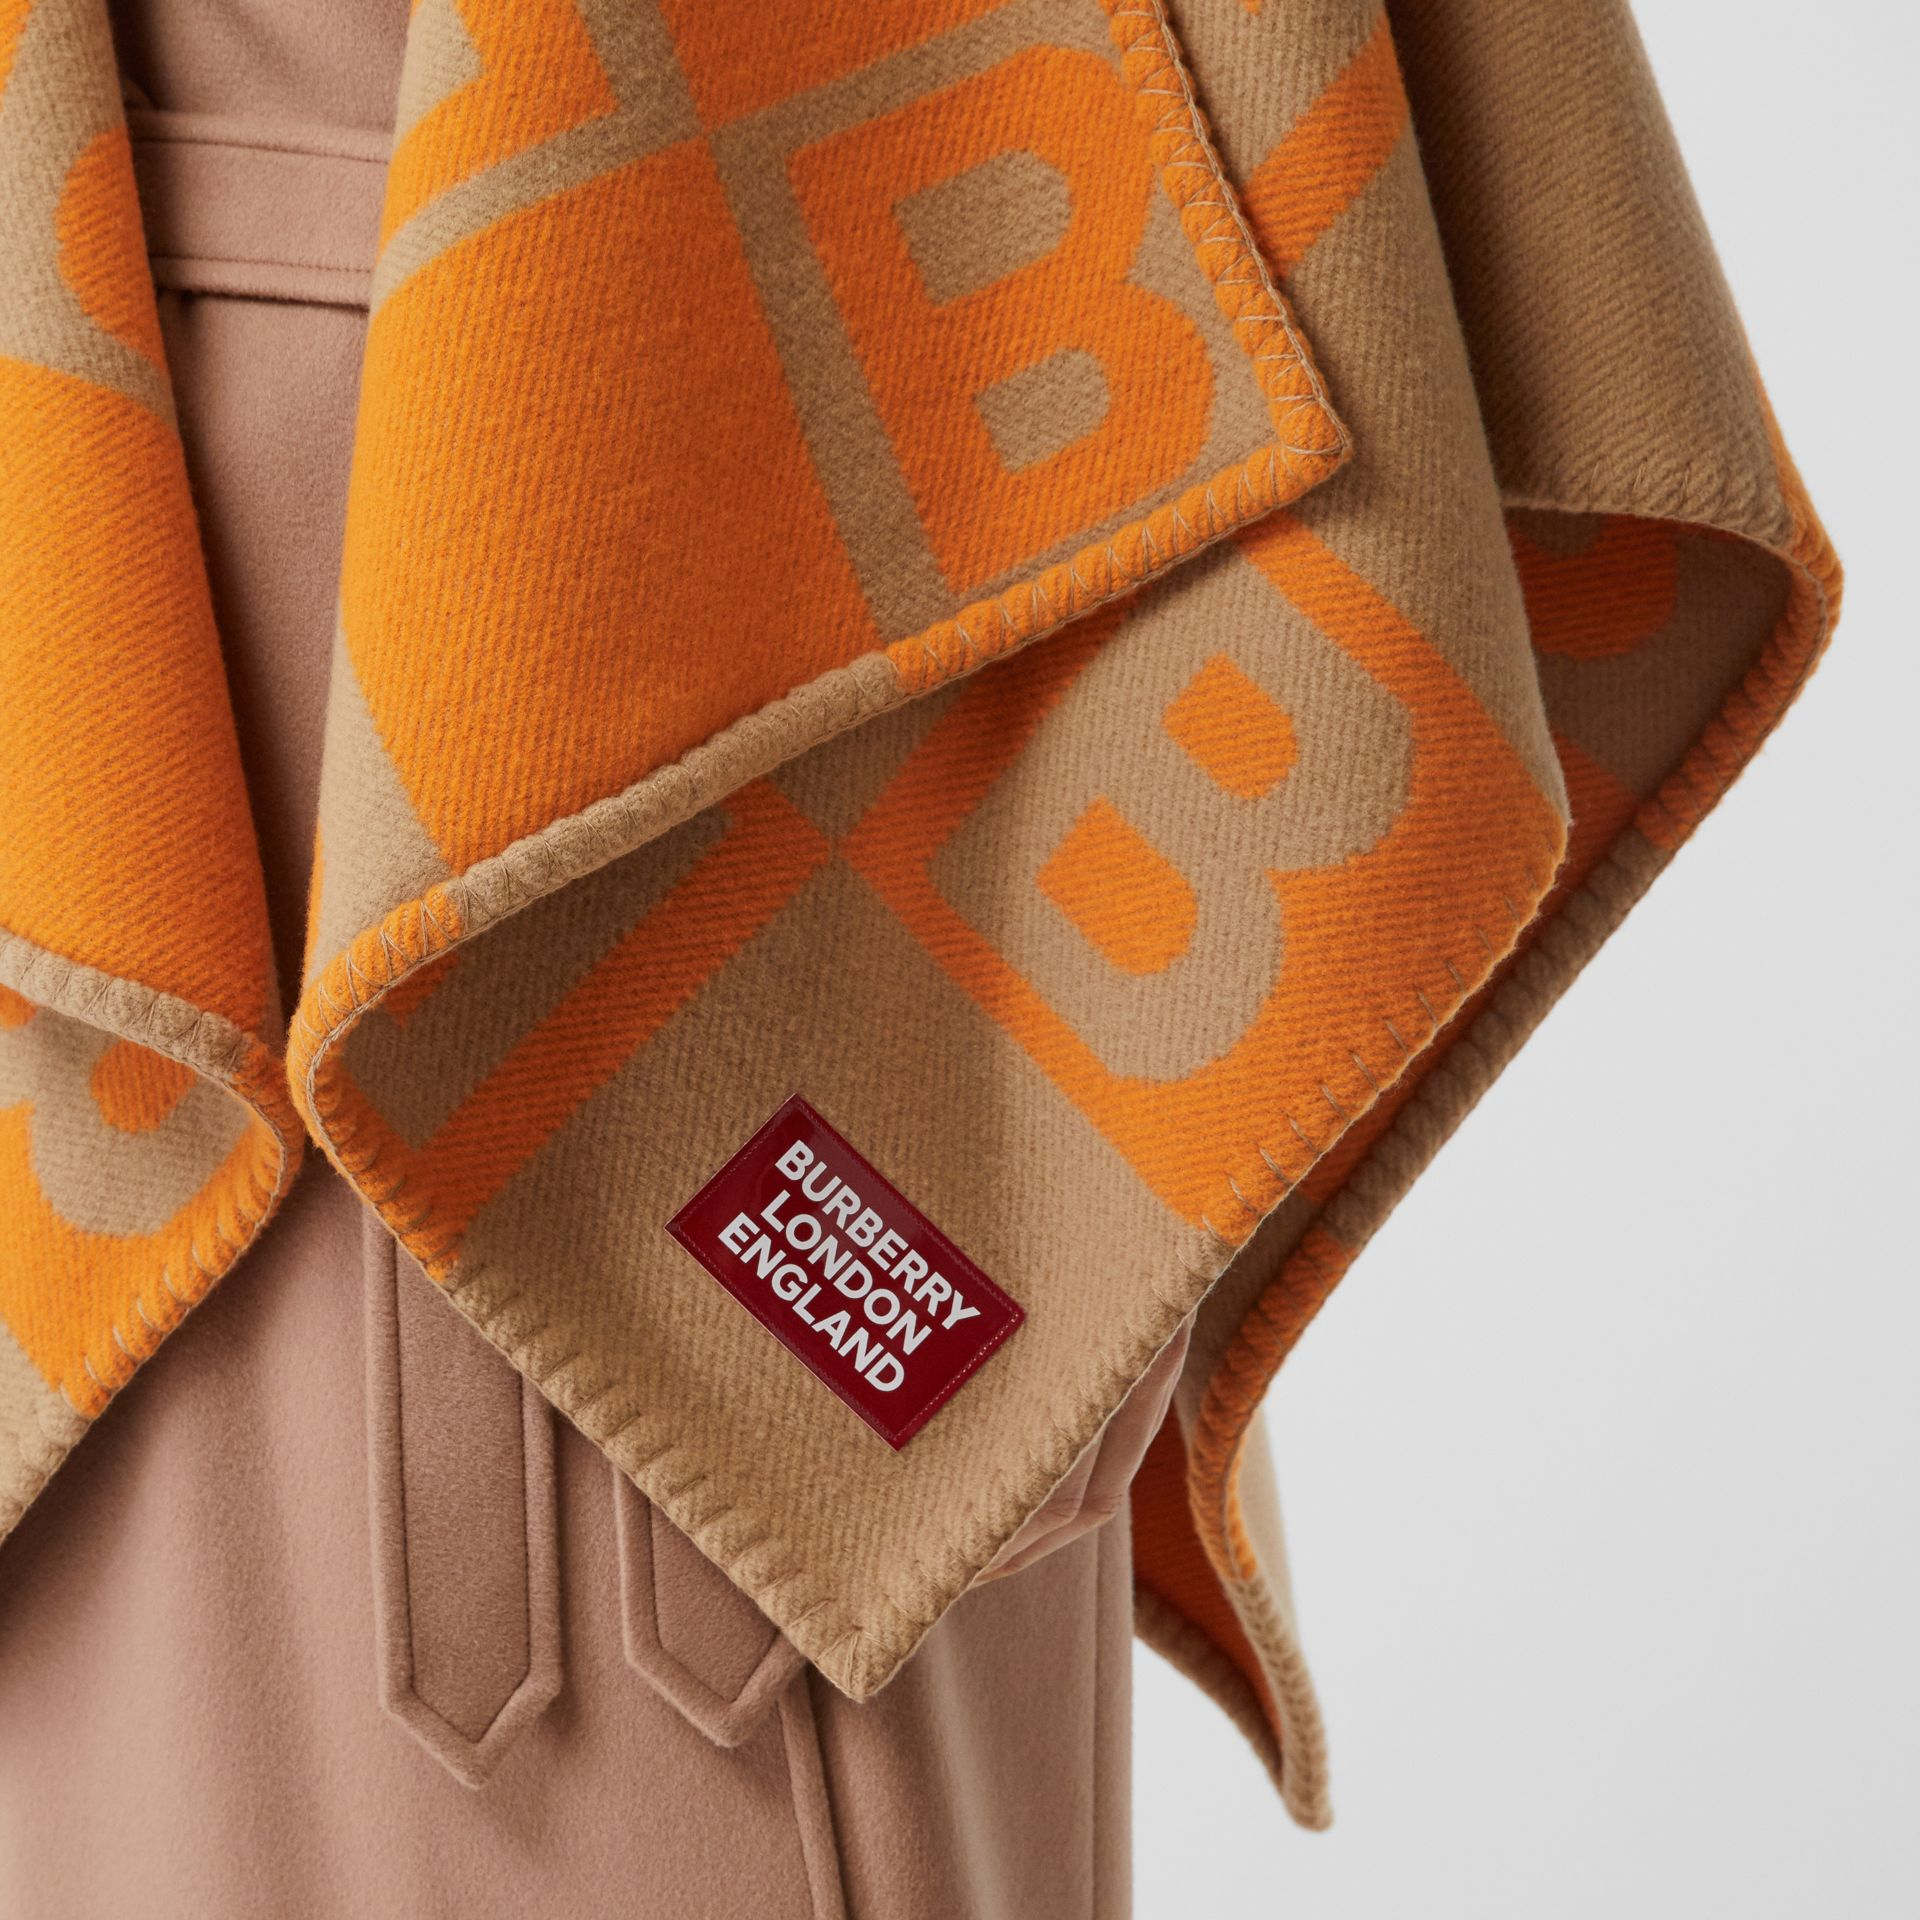 B Motif Merino Wool Cashmere Cape in Orange - Women | Burberry - gallery image 1